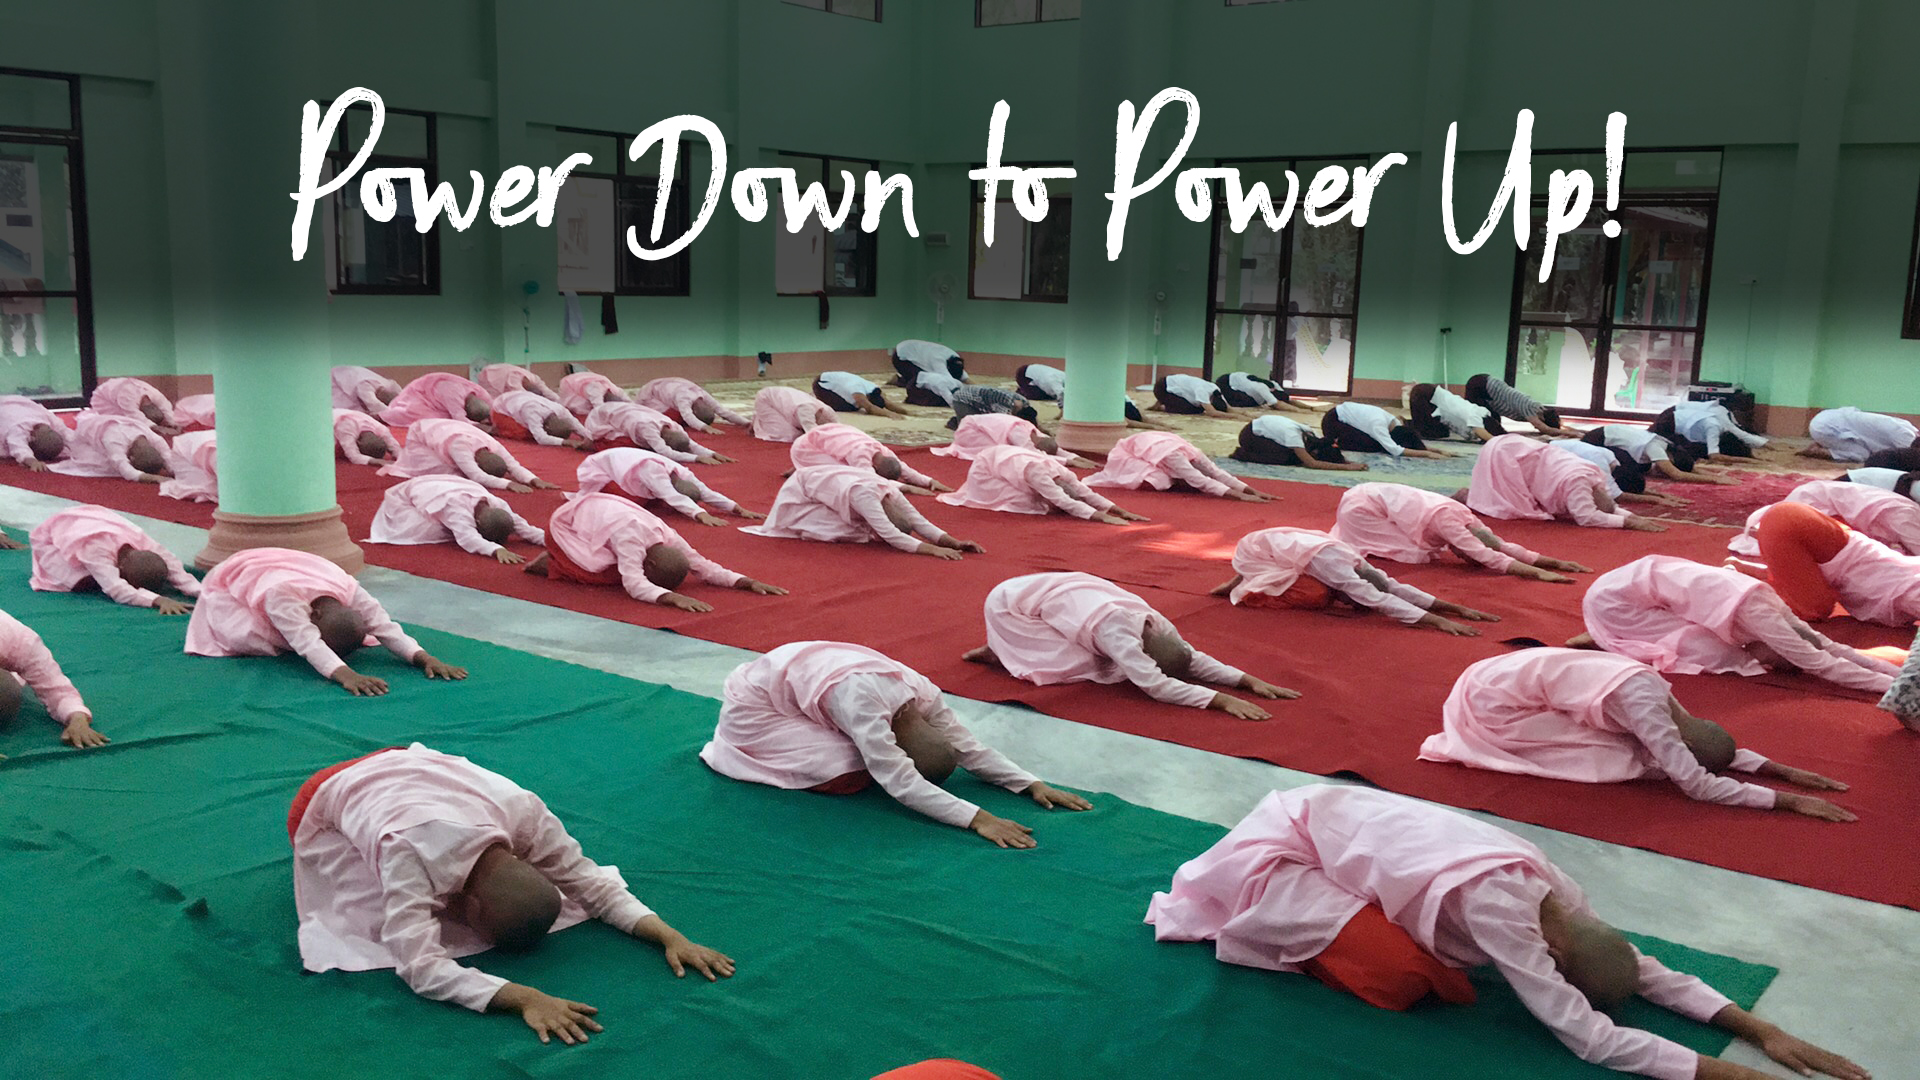 power down to power up